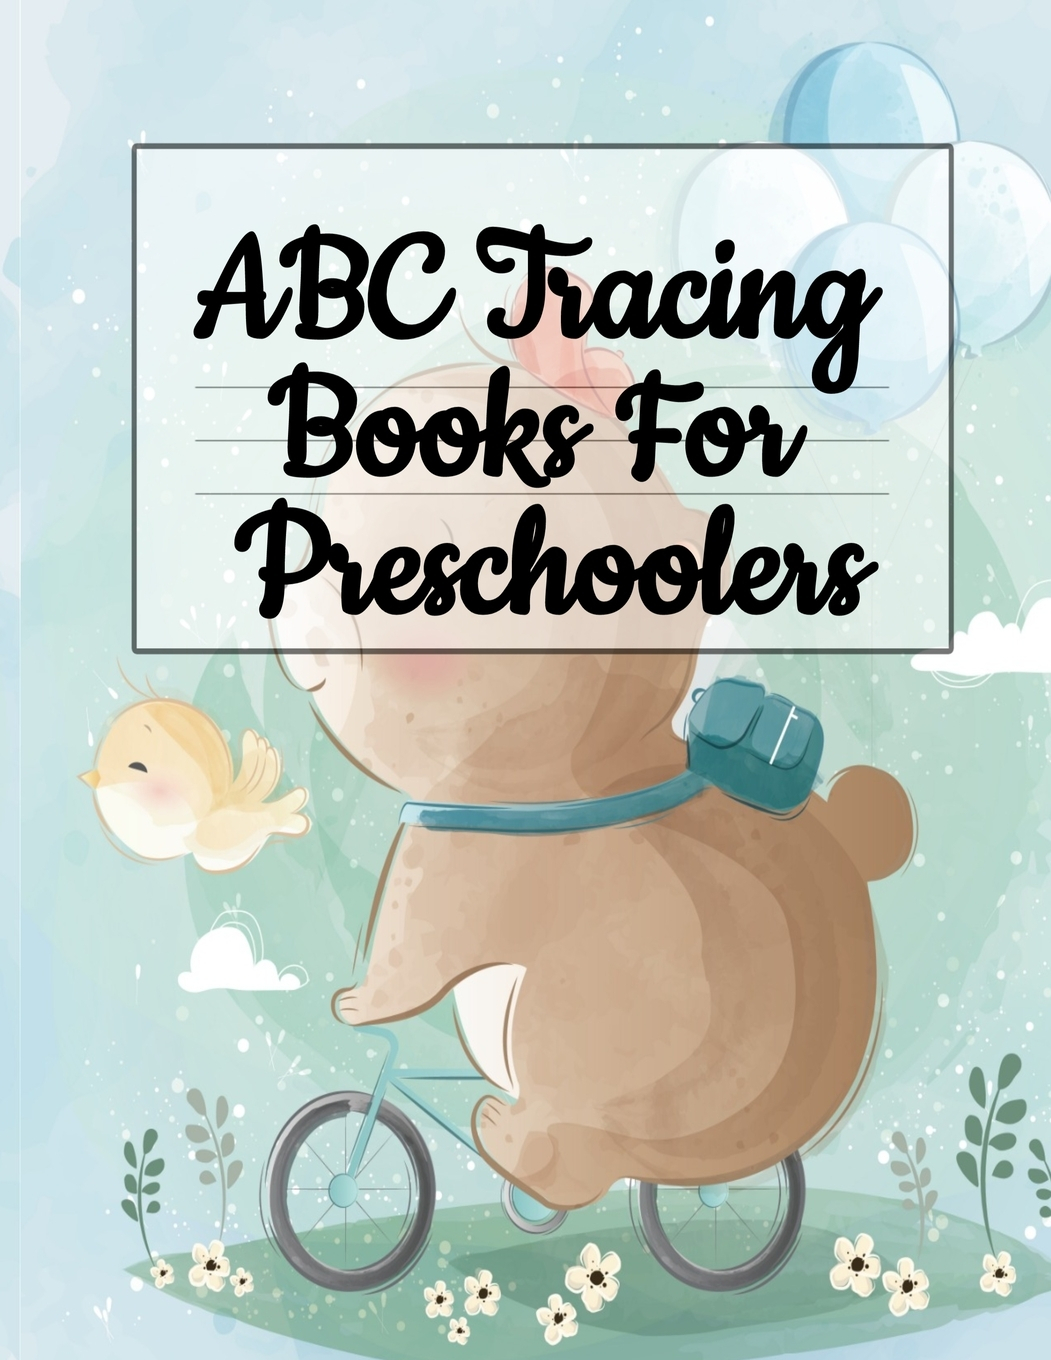 Abc Tracing Books For Preschoolers: Alphabet Writing Practice & A To Z  Letter Tracing (Paperback) - Walmart pertaining to Alphabet Tracing Book Walmart